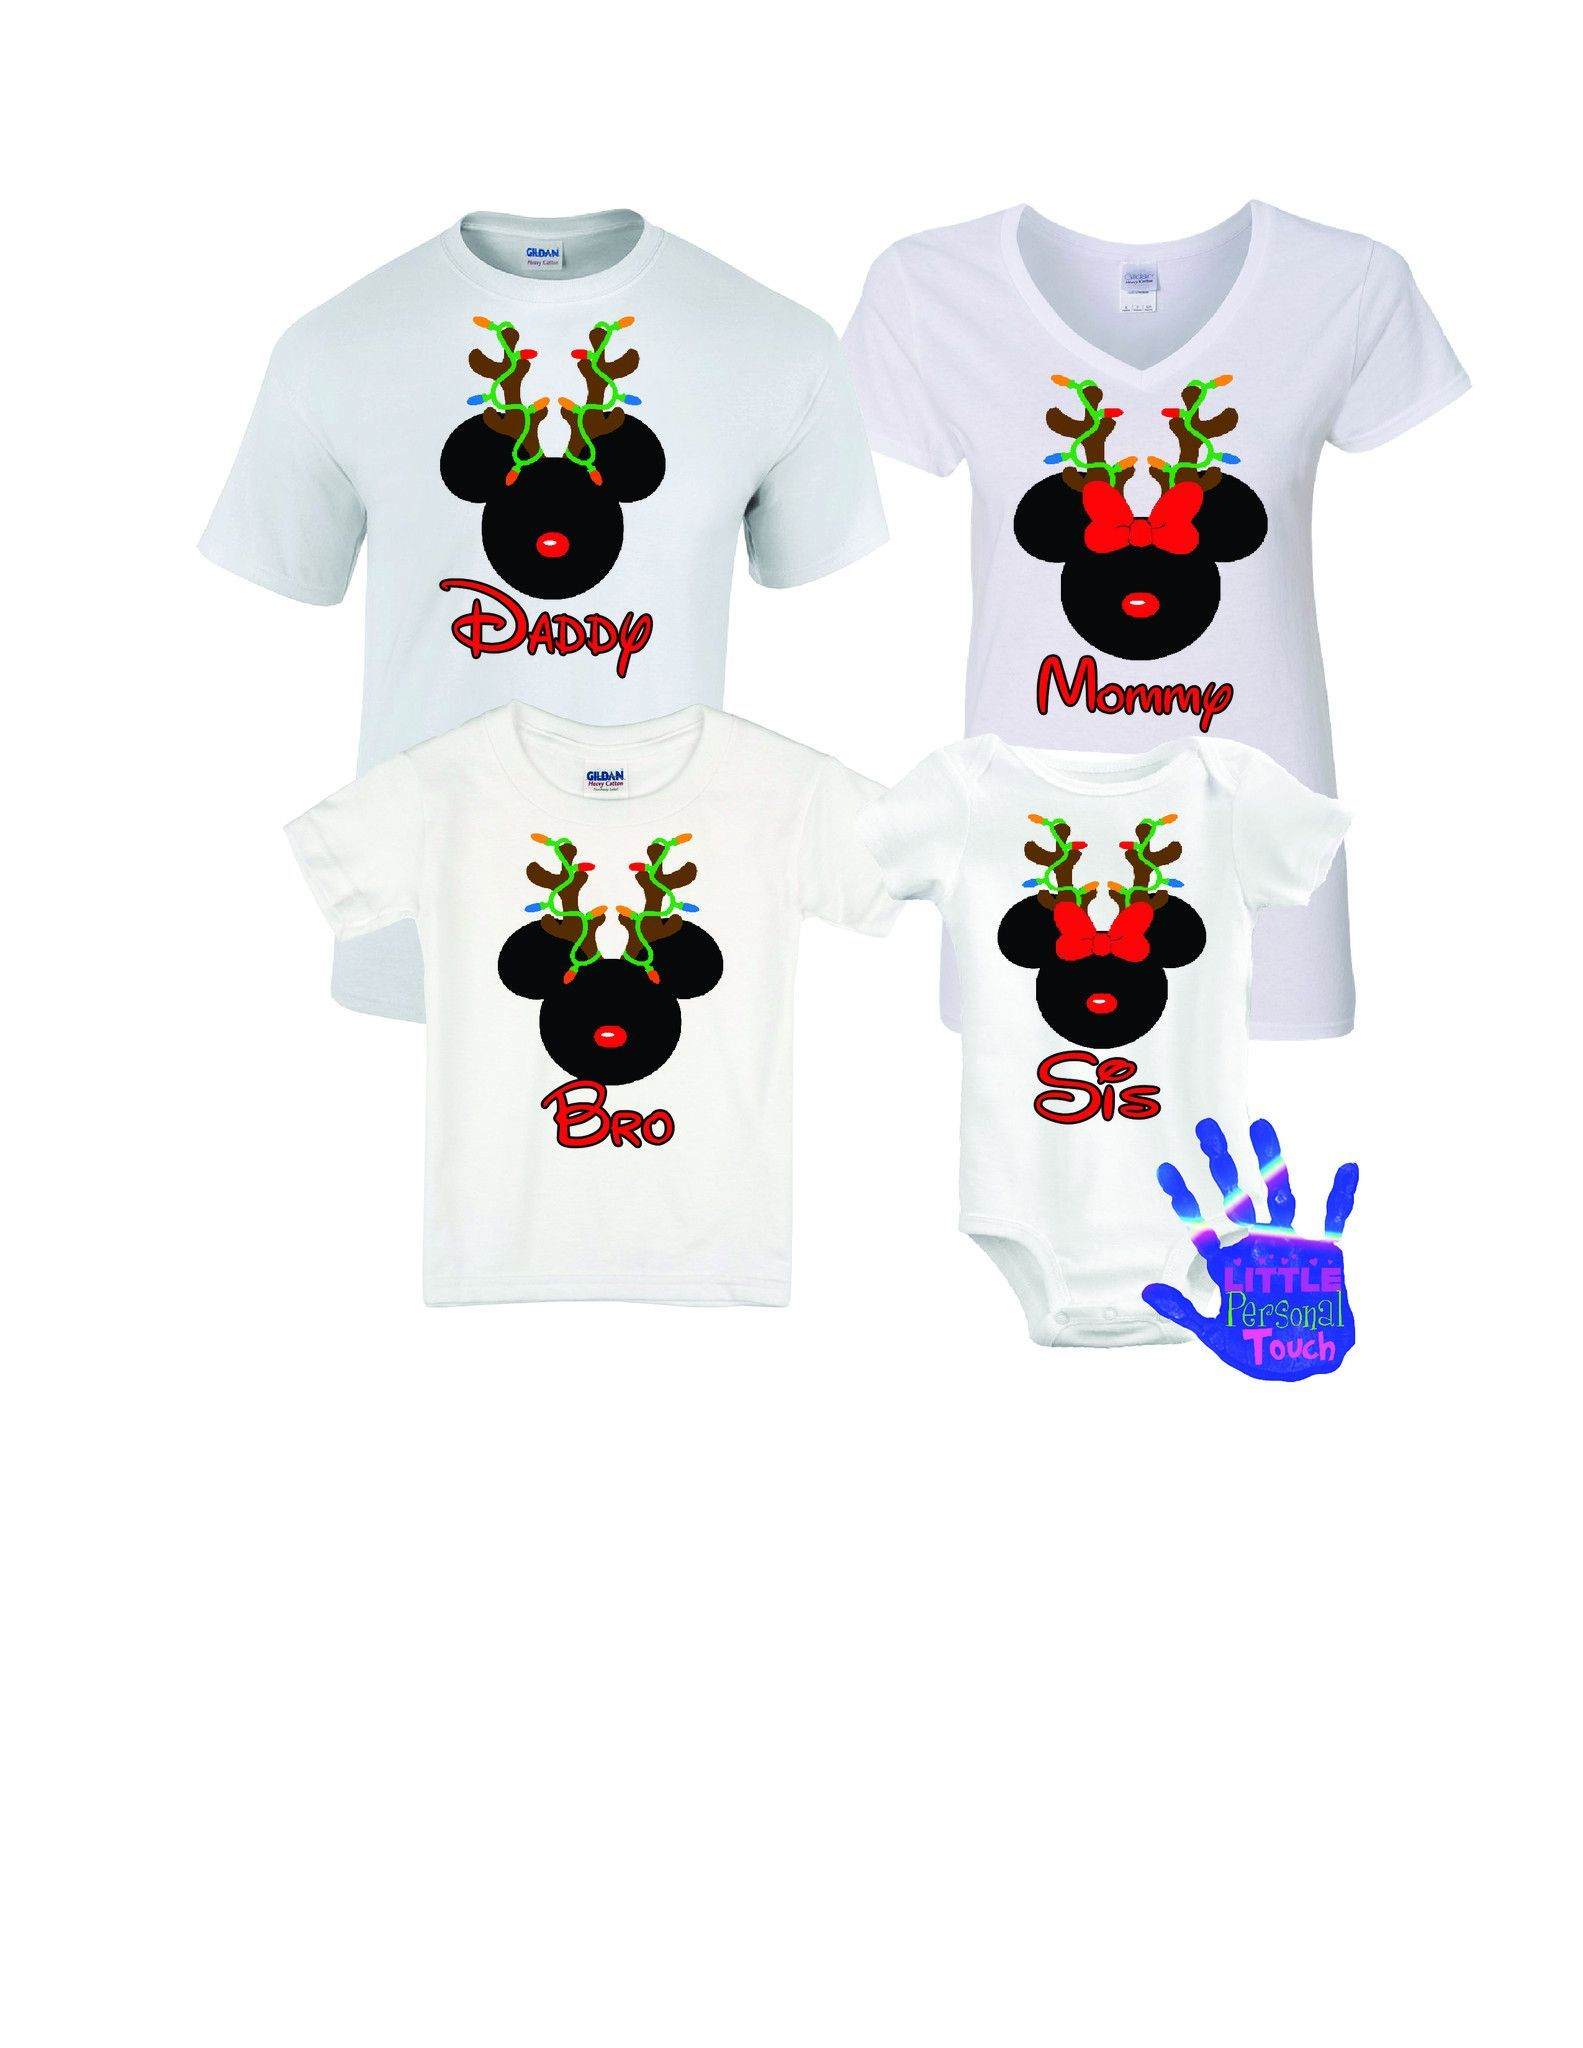 Christmas Disney Shirt, Personalized Disney Family Vacation Shirts ...